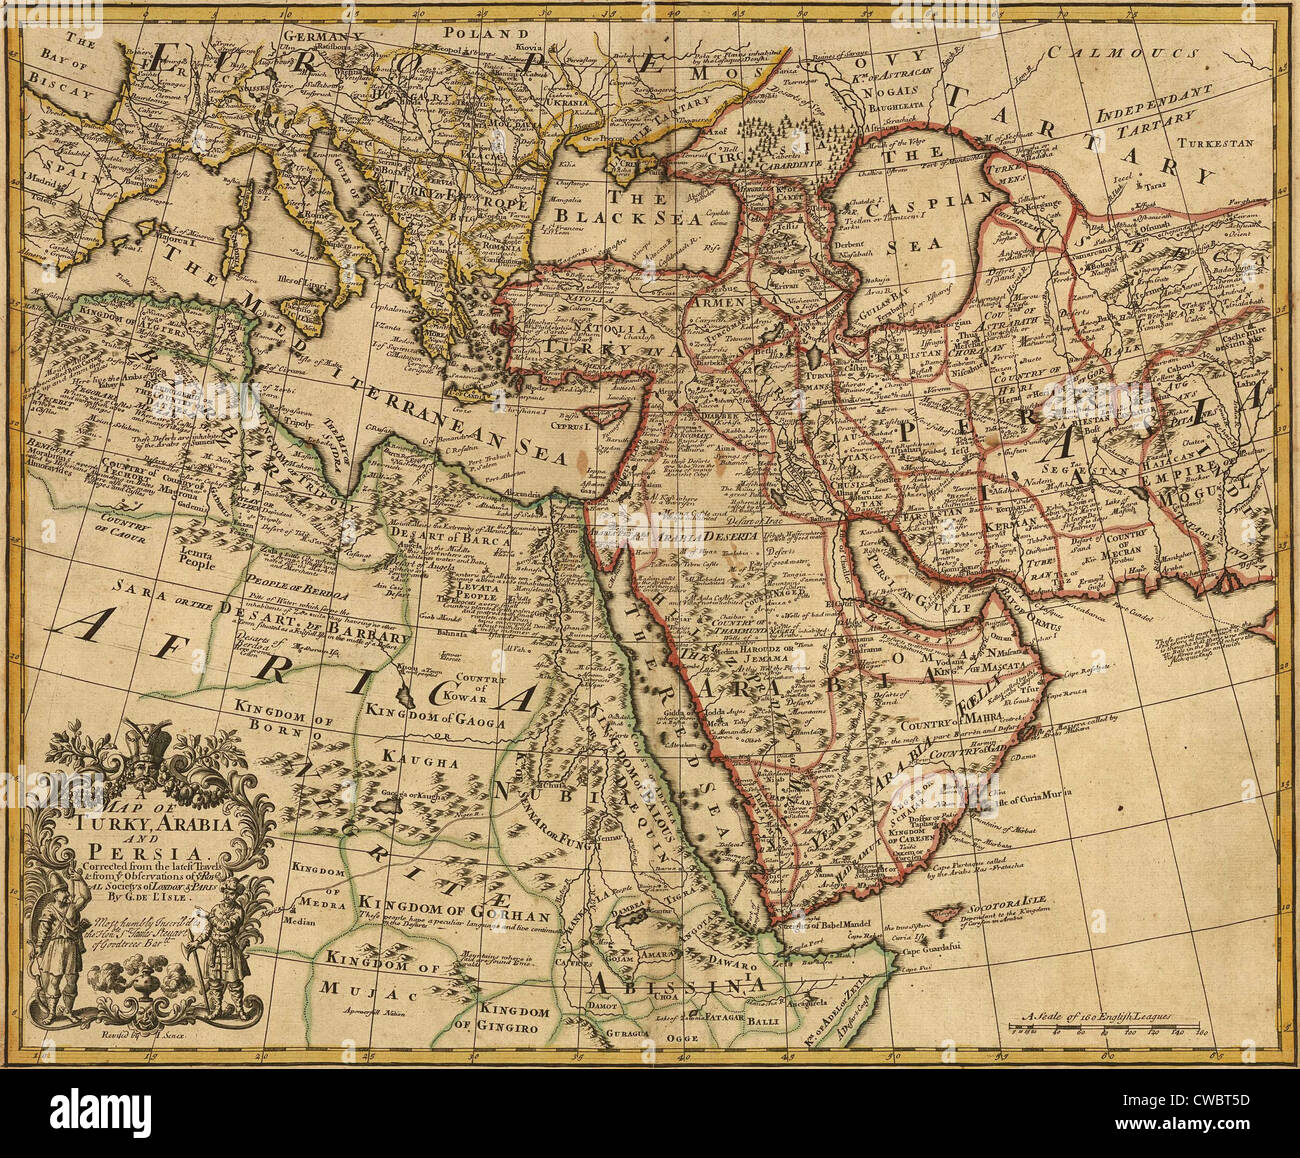 1721 map of turkey arabia and persia and environs including northeast africa southern europe and southwest asia